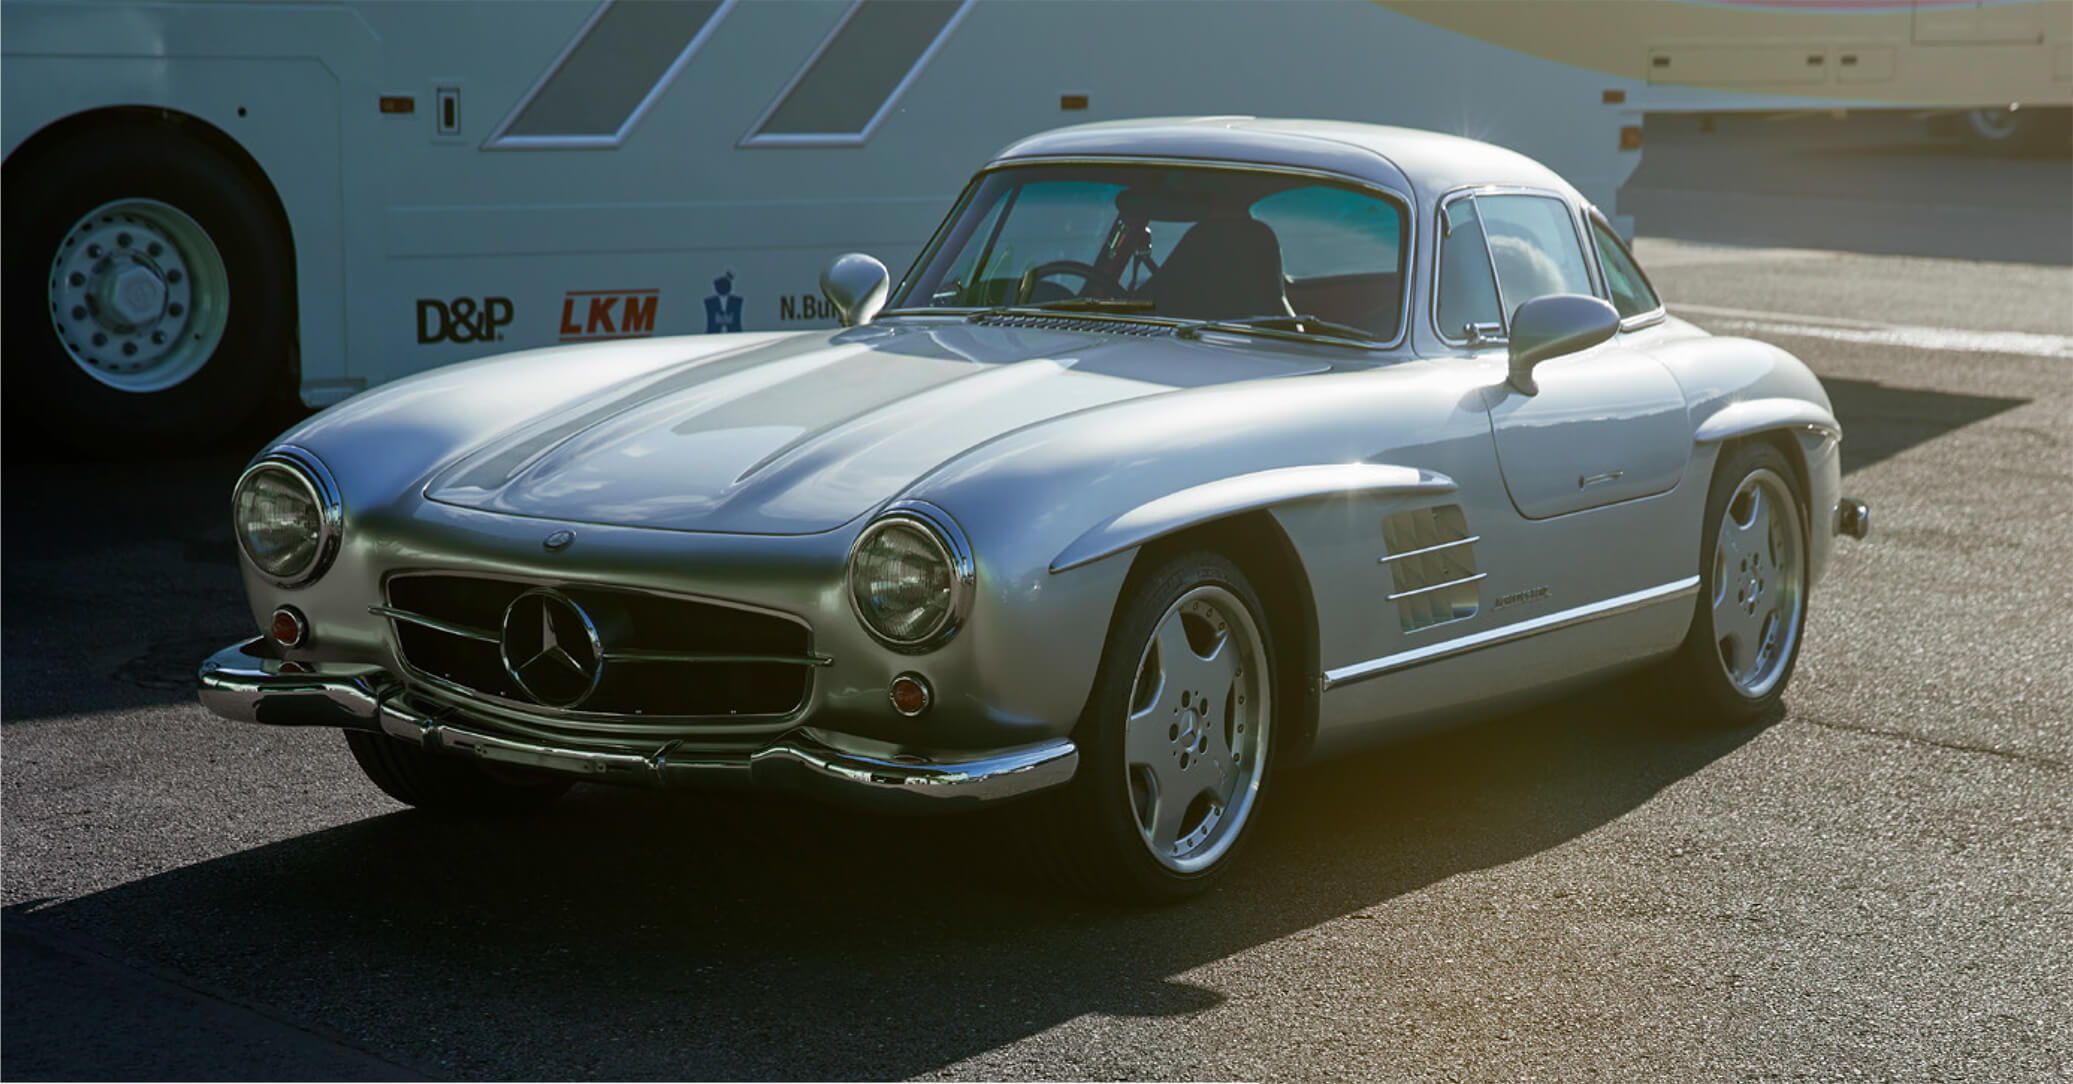 Mercedes-Benz 300 SL Gullwing 1955, AMG